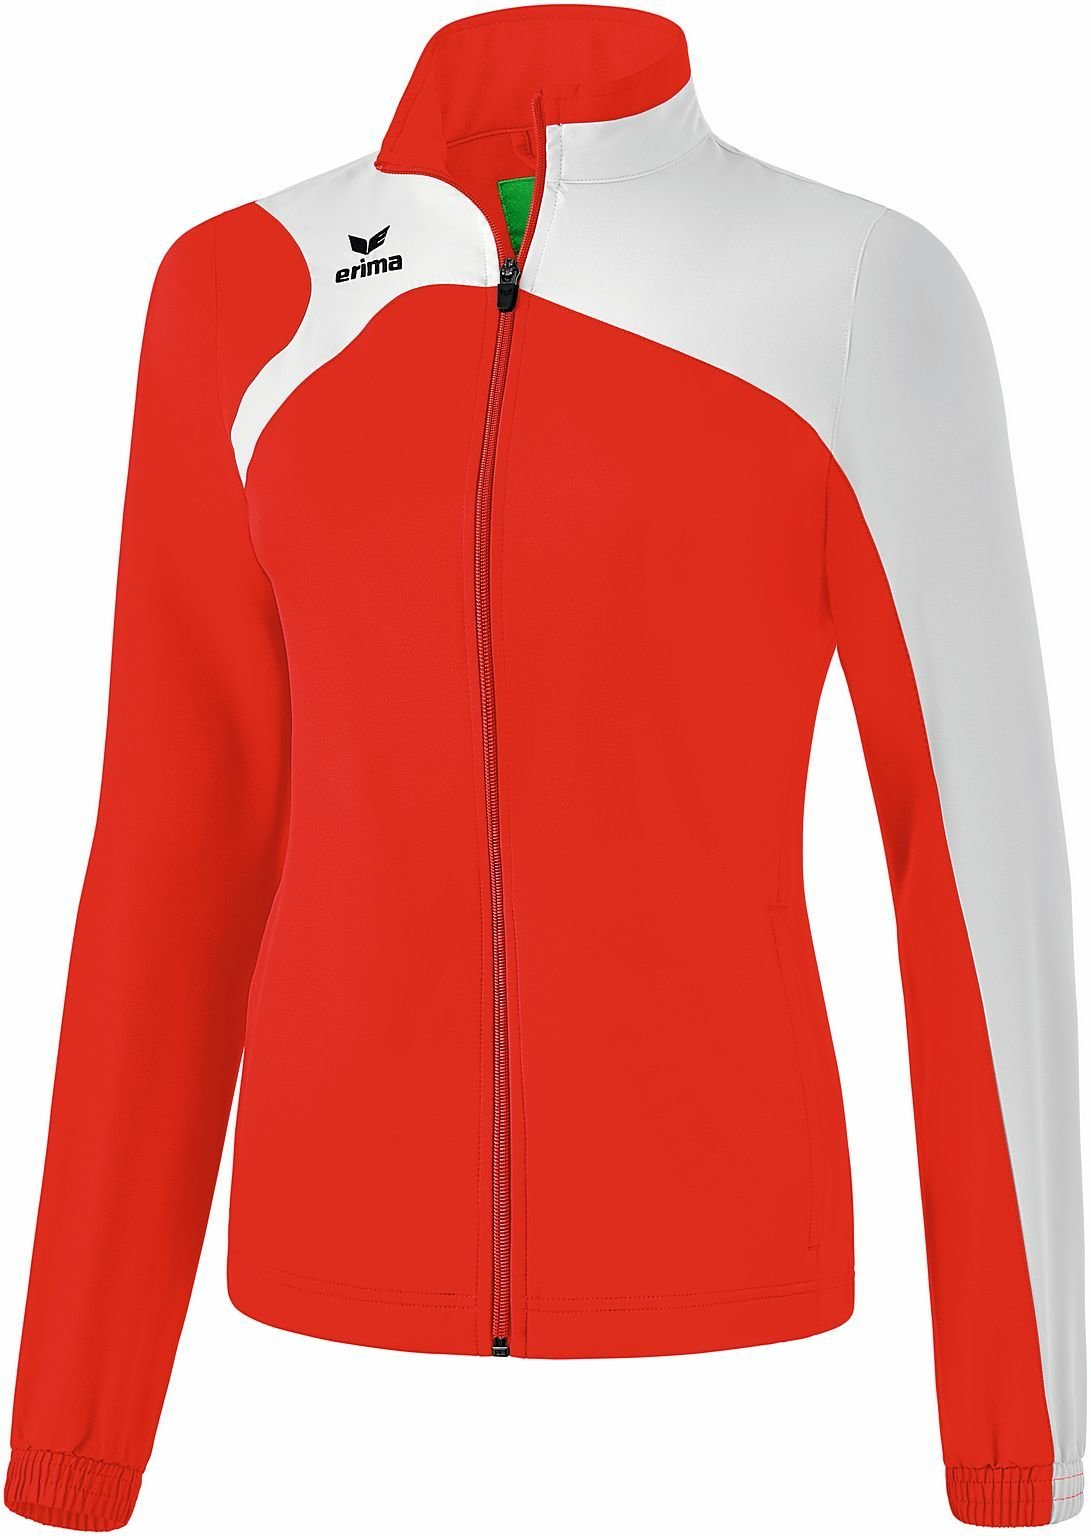 Club 1900 2.0 Präsentationsjacke Damen